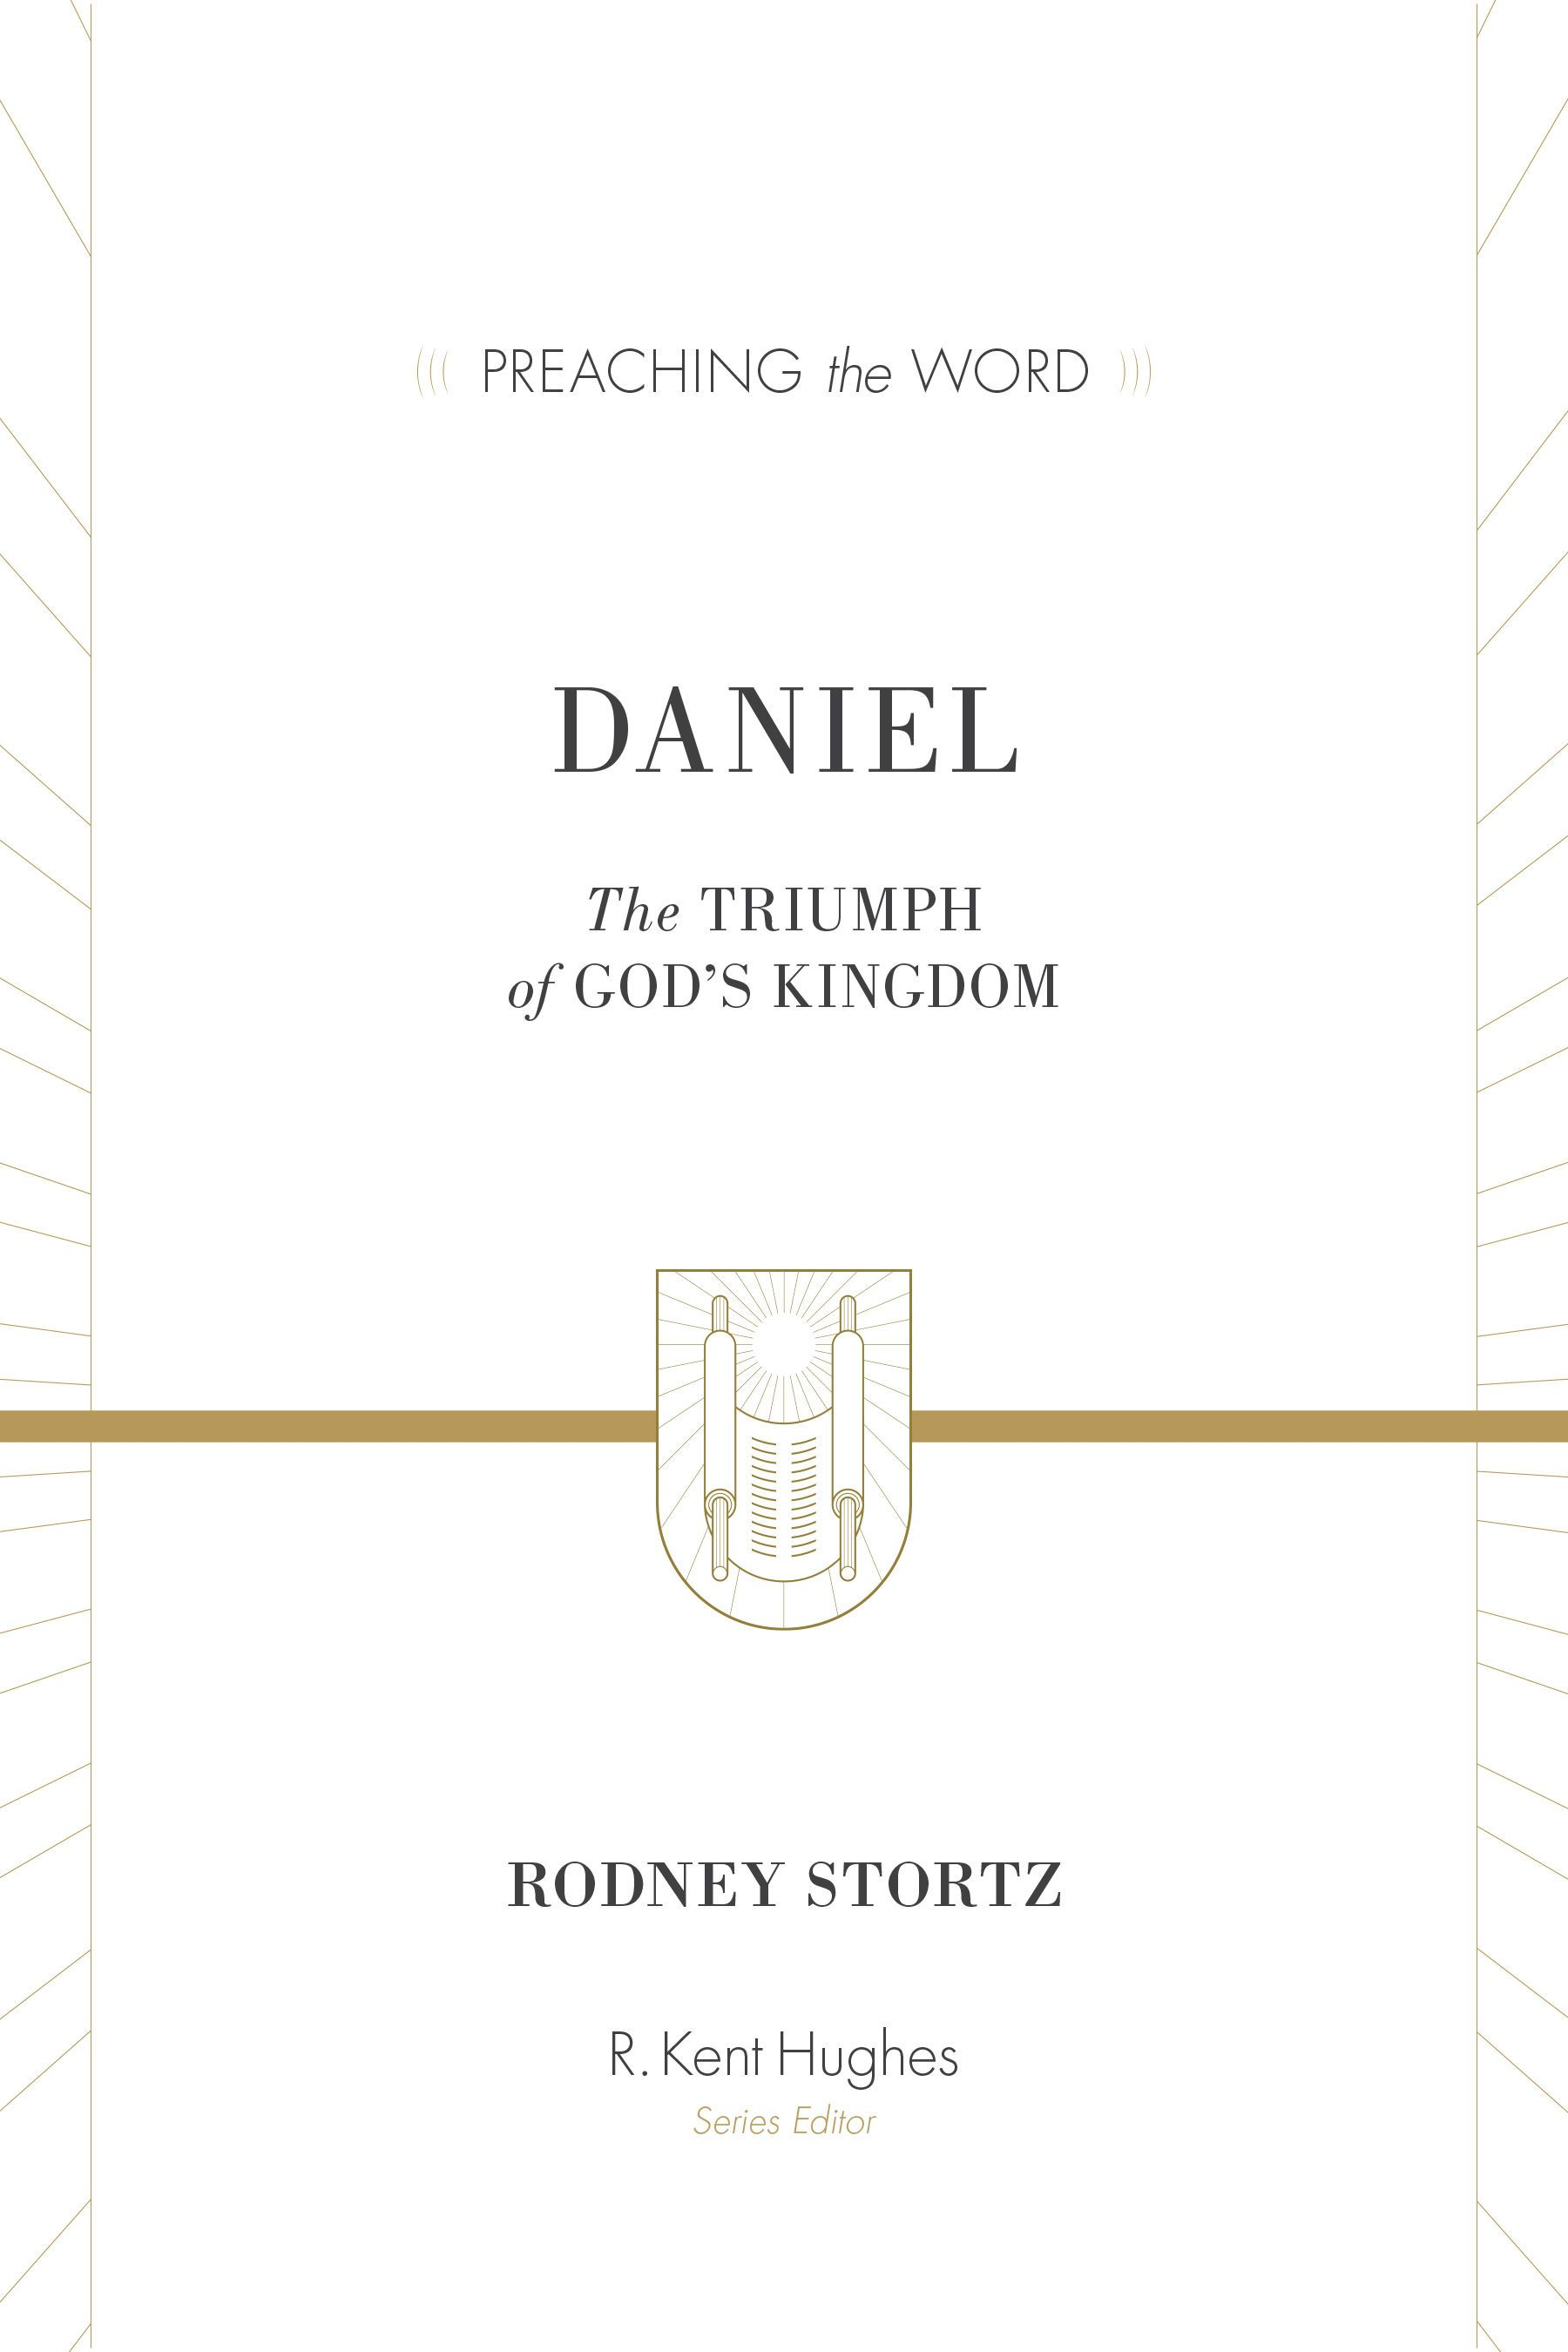 Daniel: The Triumph of God's Kingdom (Preaching the Word) by Rodney D. Stortz, ISBN: 9781433548765